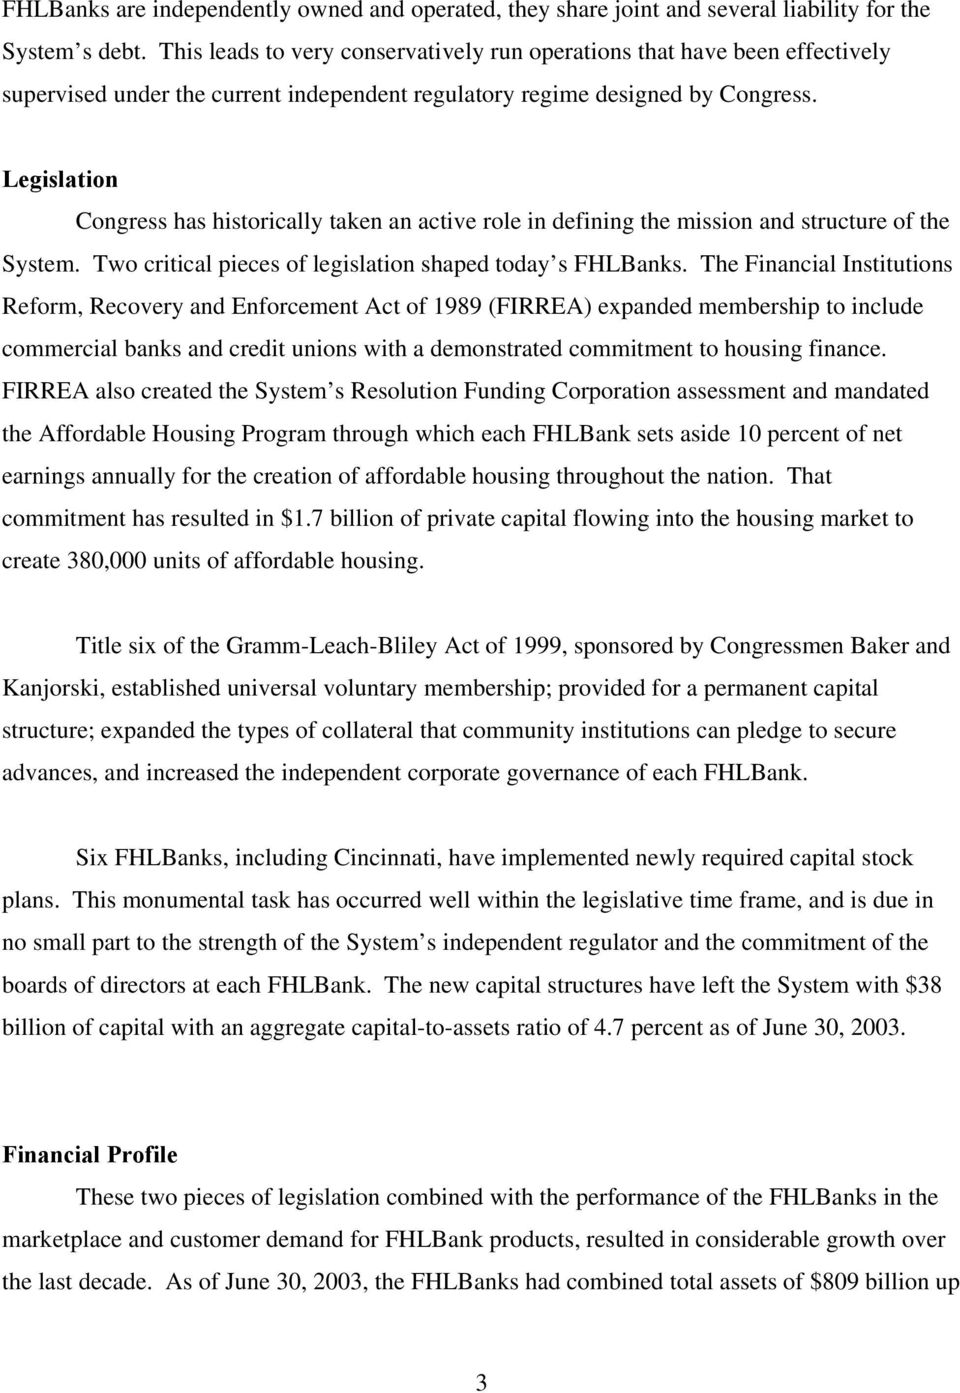 Legislation Congress has historically taken an active role in defining the mission and structure of the System. Two critical pieces of legislation shaped today s FHLBanks.